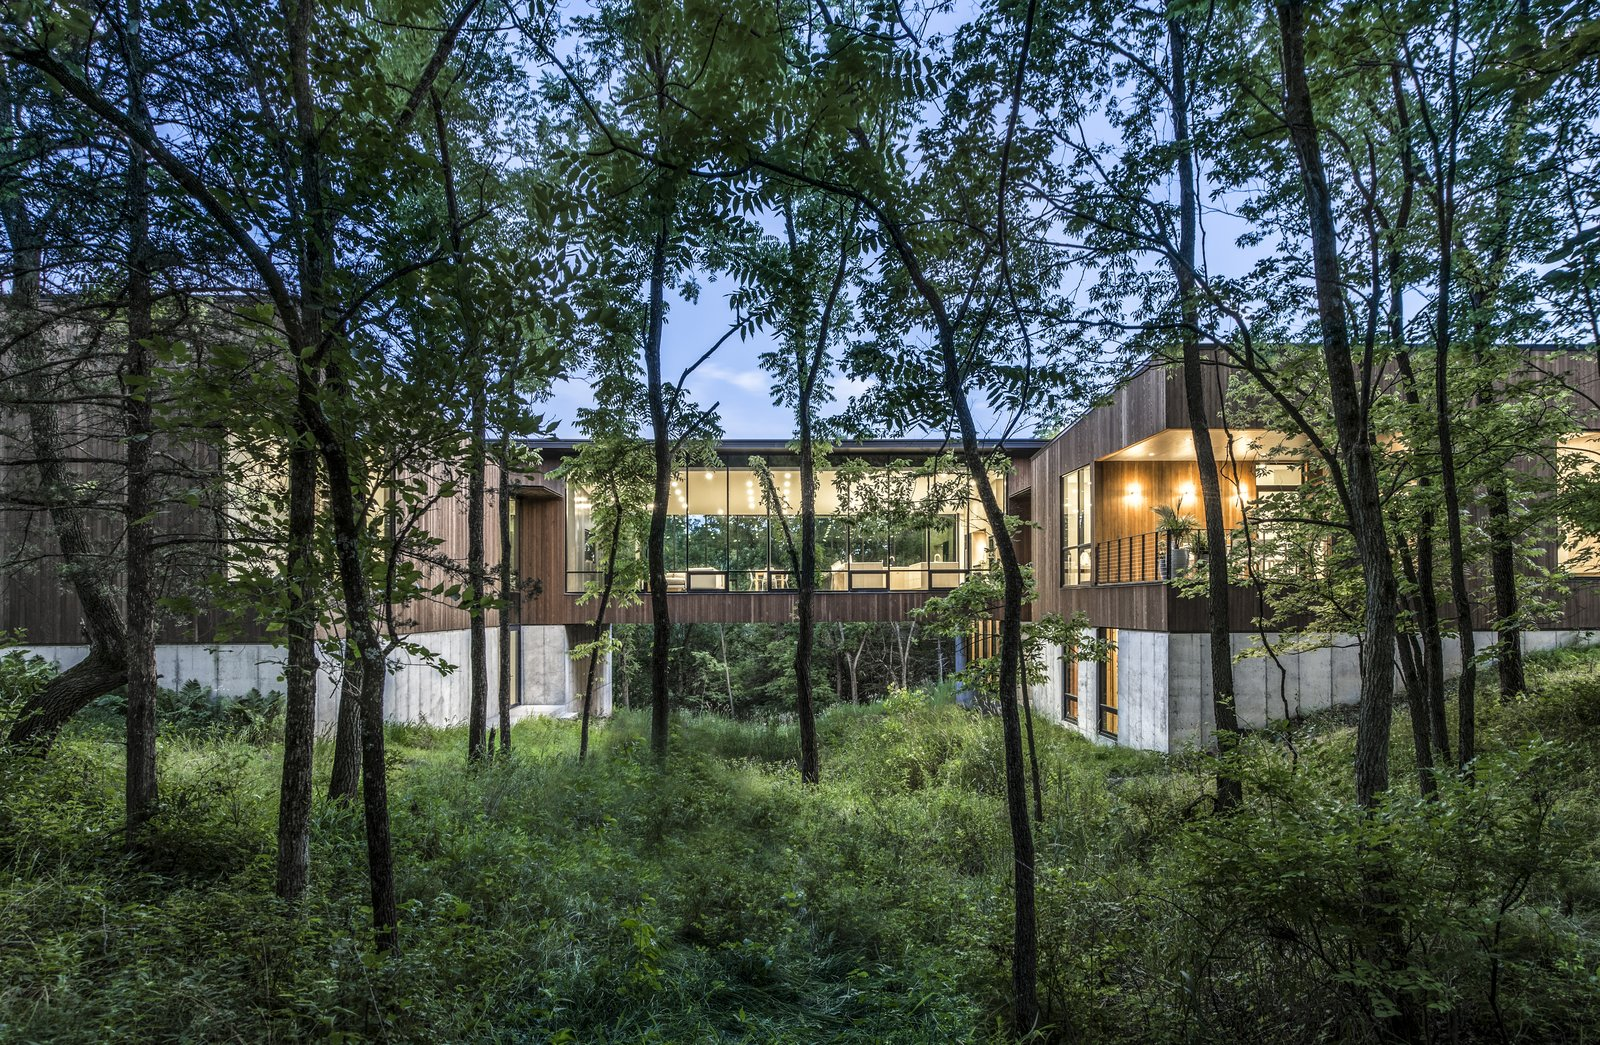 Exterior and House Building Type  Photo 1 of 10 in An Incredible Forest Home Leaps Over a Ravine